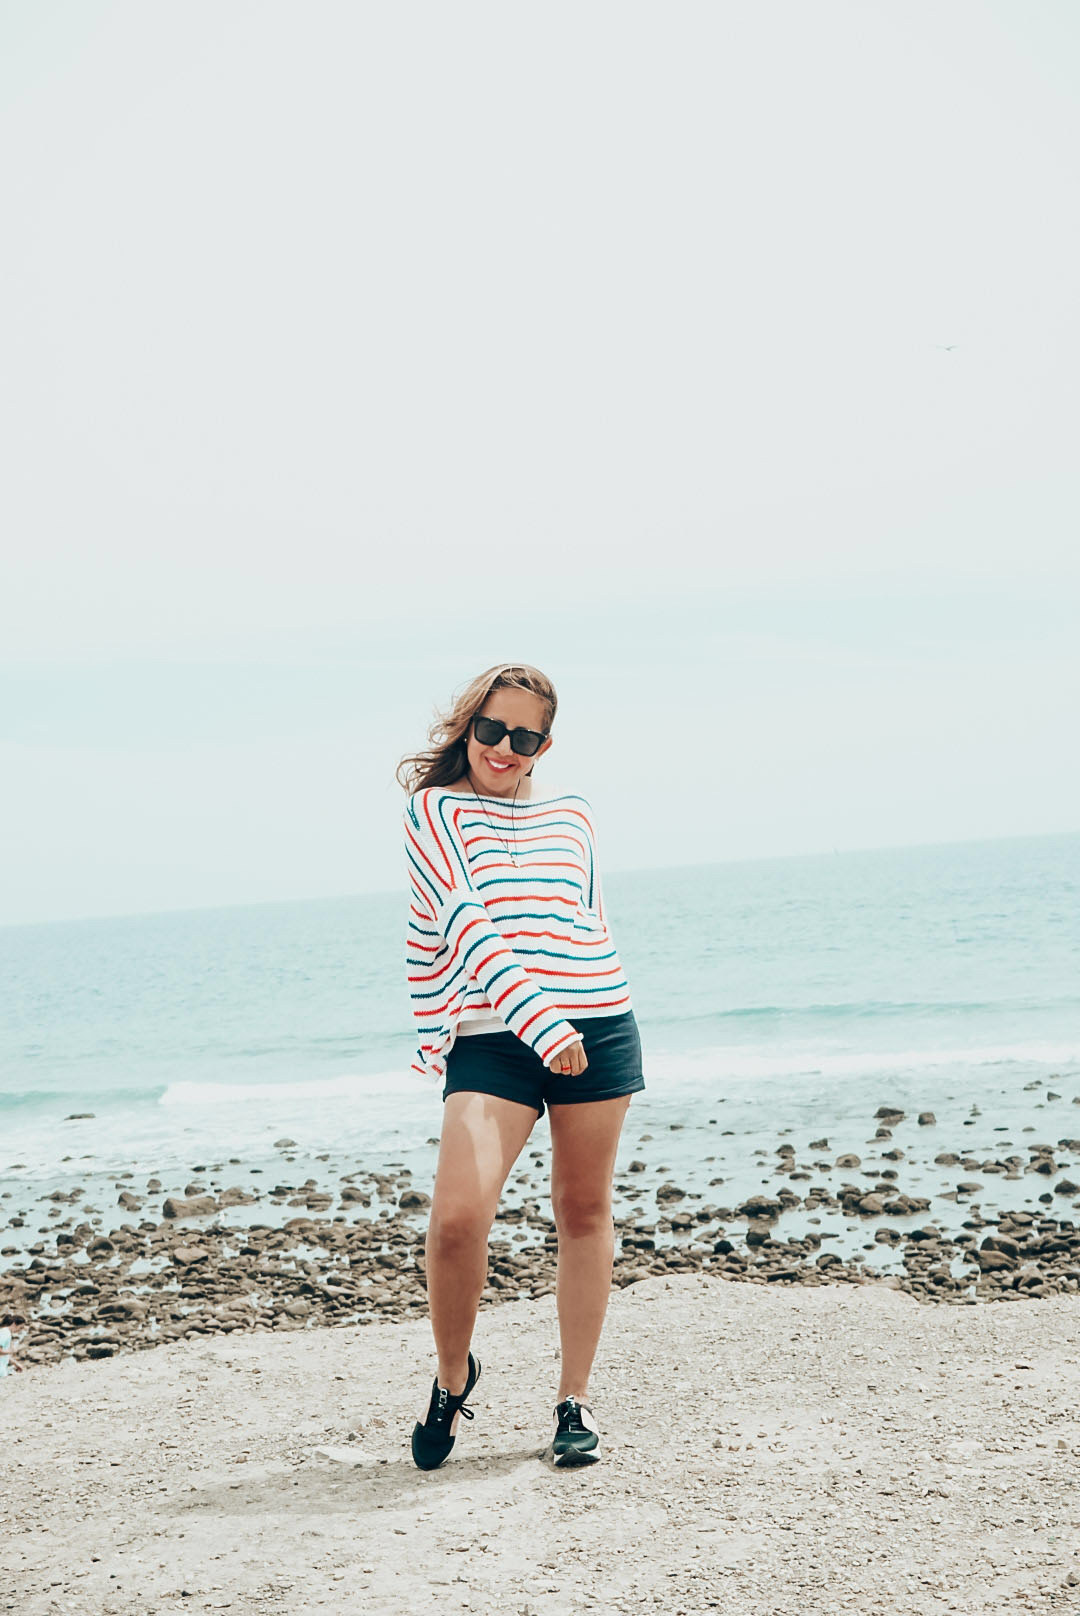 Girl in red white and blue knit sweater at the beach.